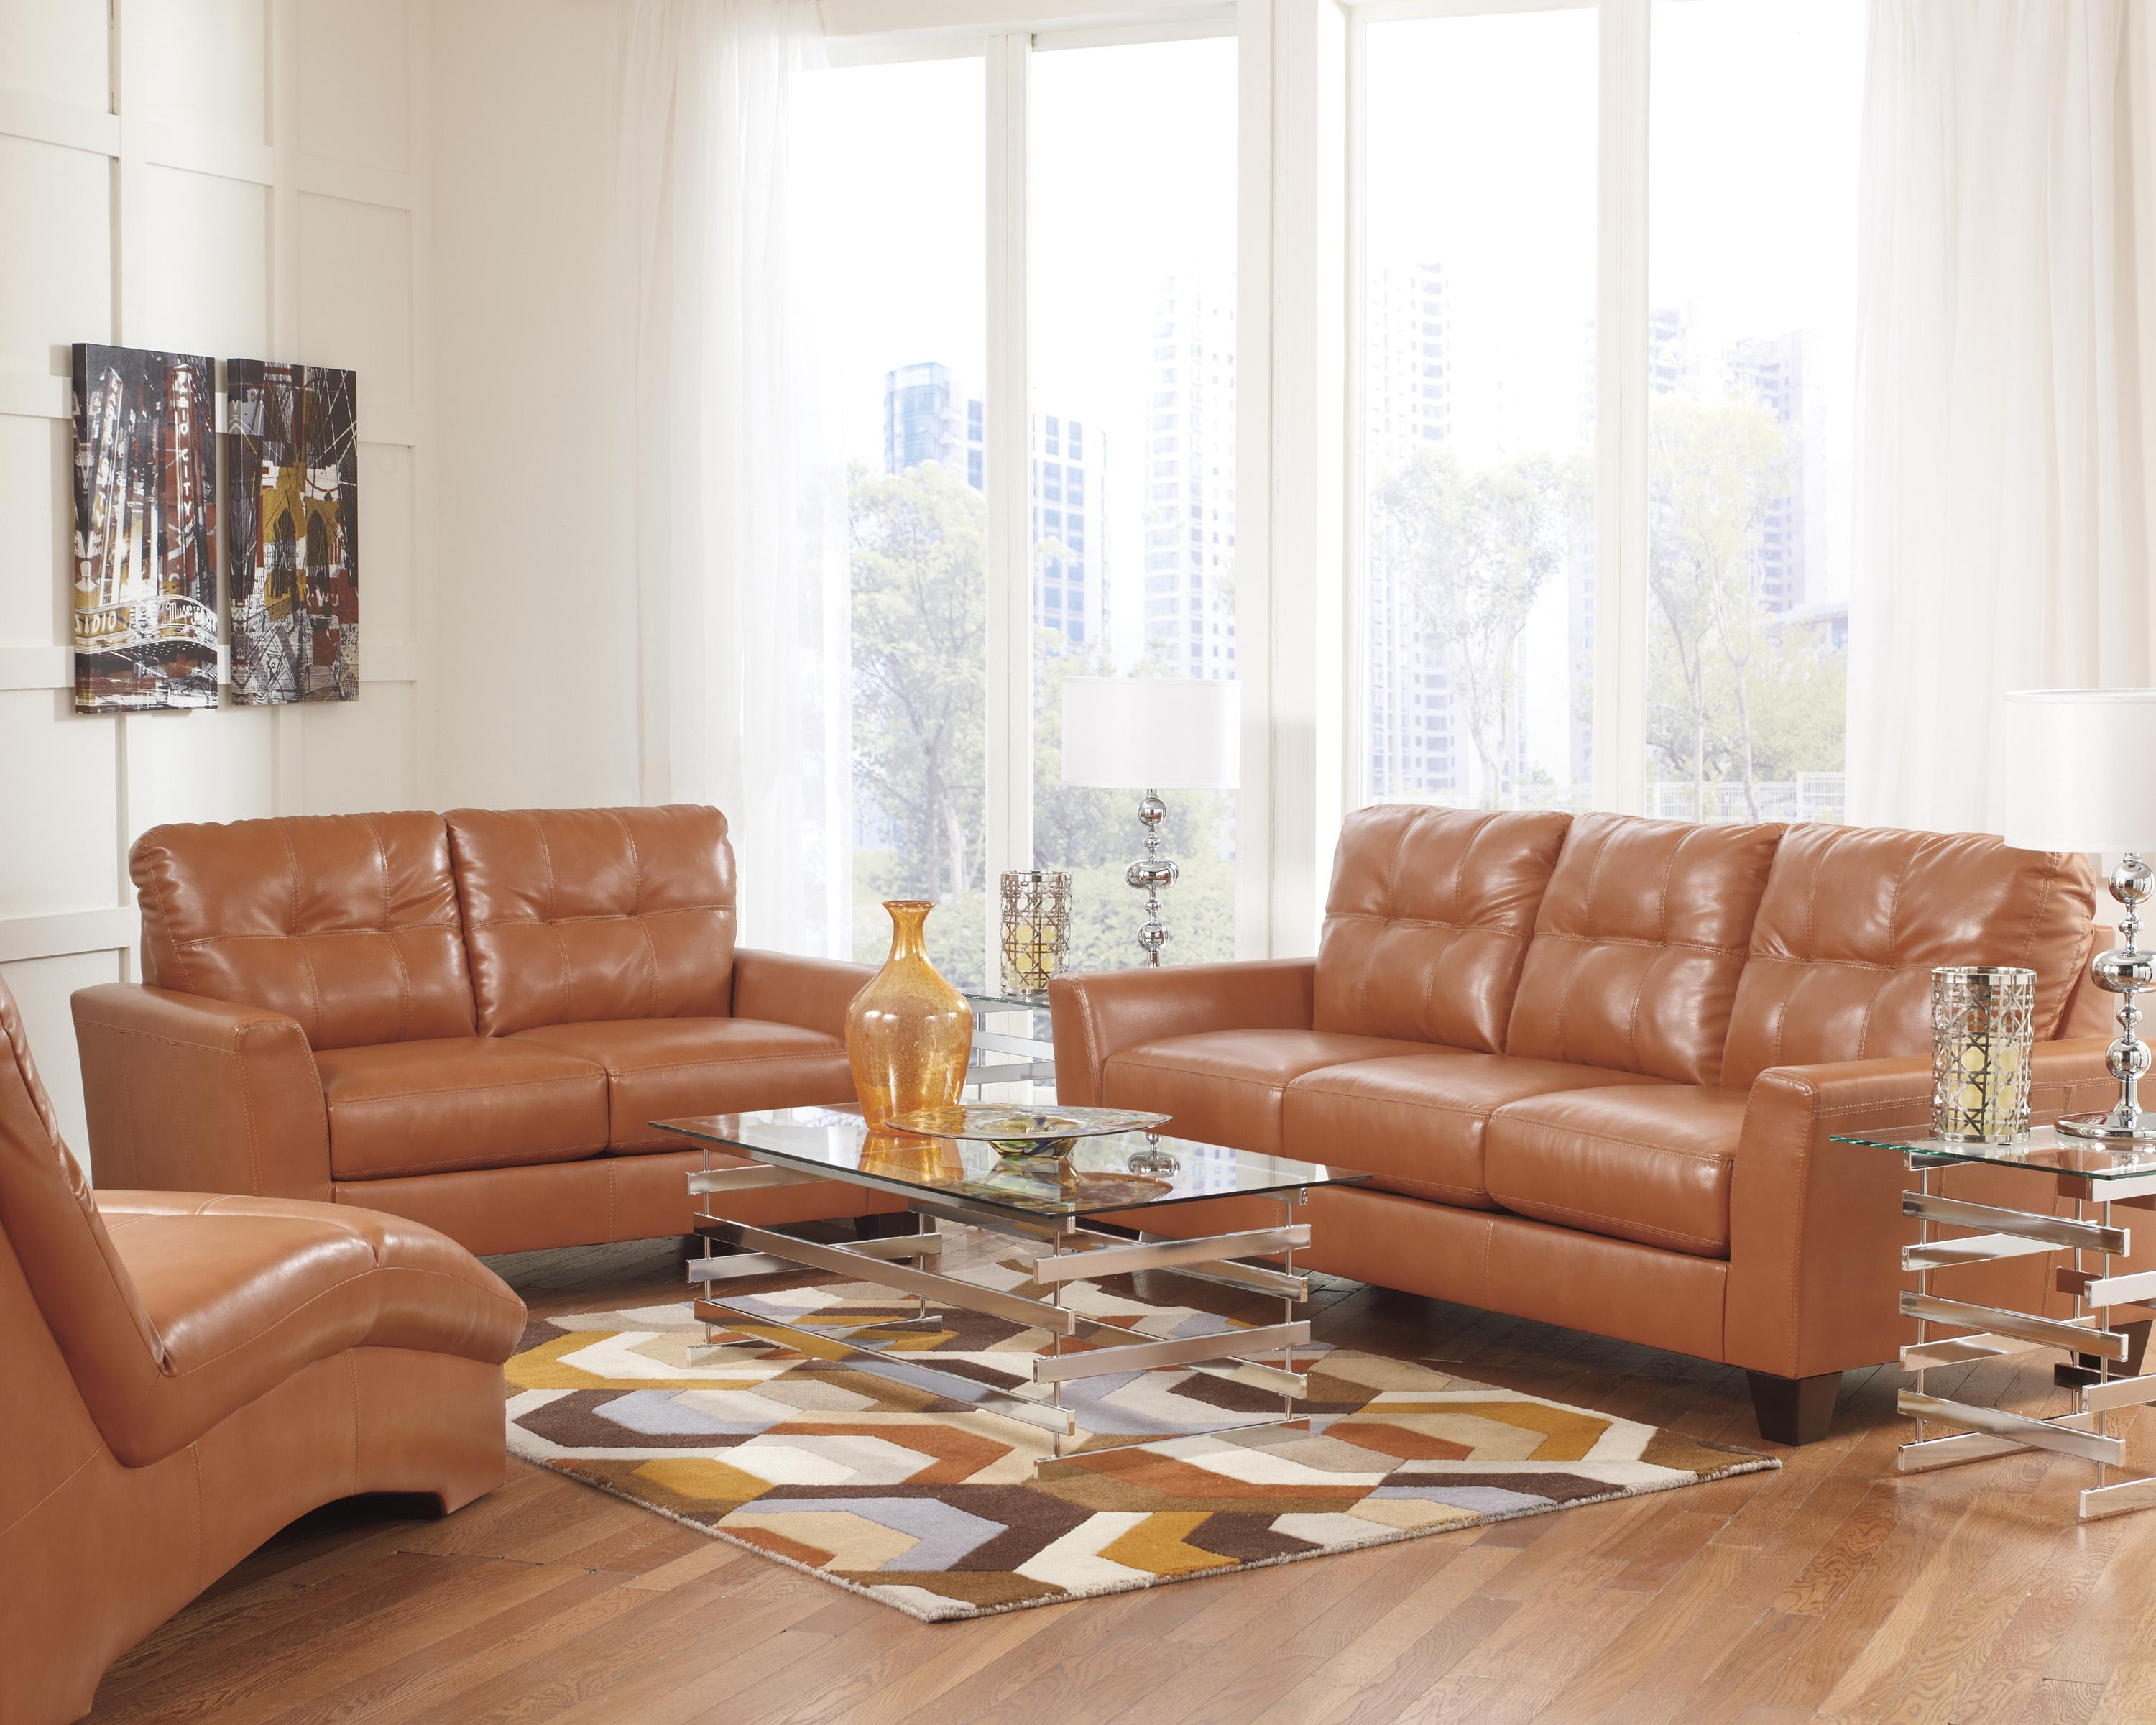 Burnt Orange Leather Sofa Trieste Living Room Collection (Image 1 of 20)